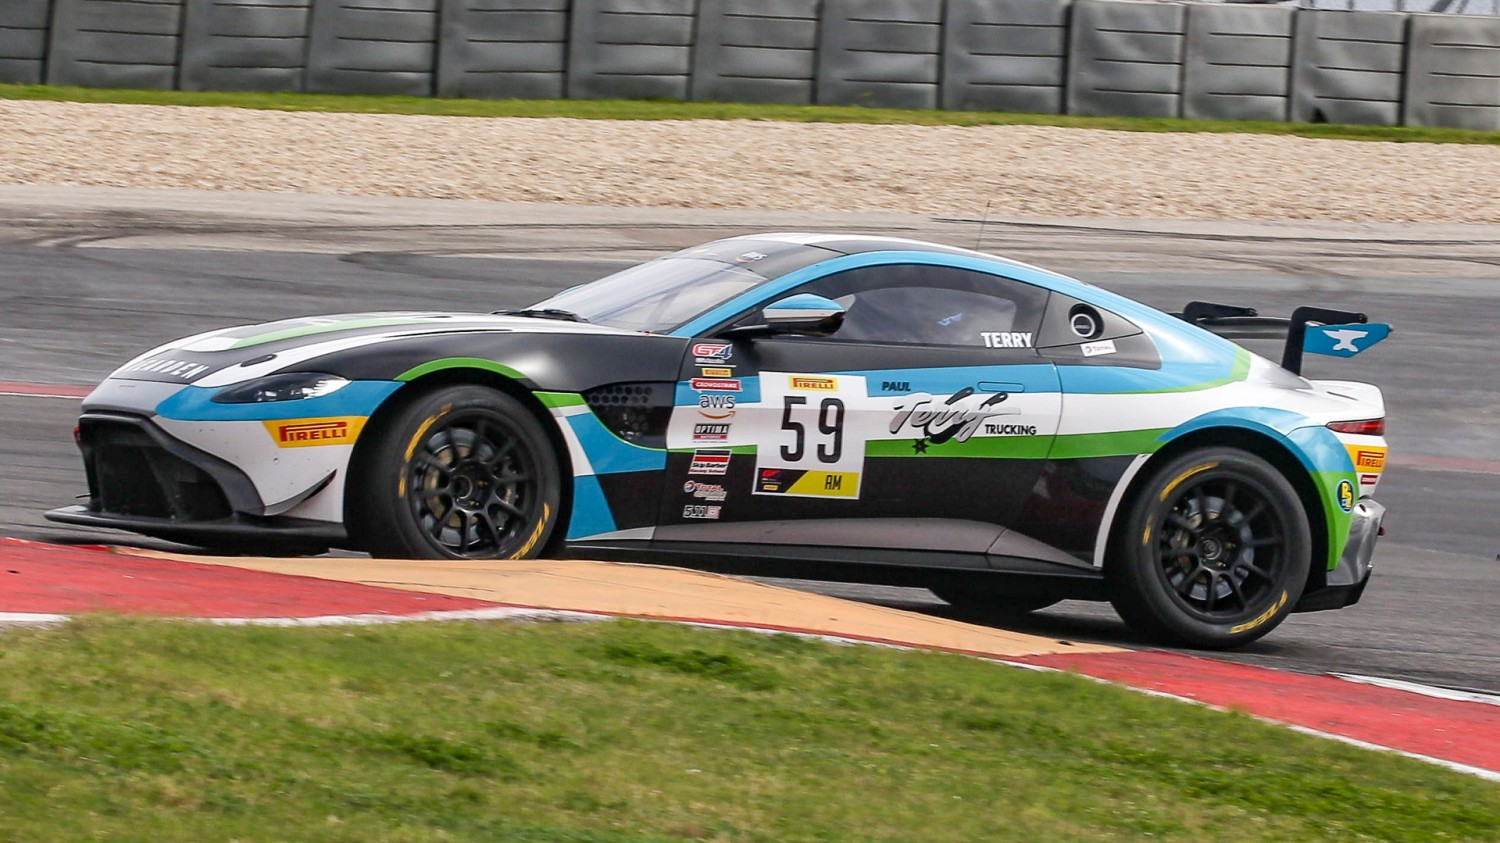 Busy Weekend for Rearden Racing with 4 Cars in SRO Action at VIR, Burton, Kozarov, Terry, Allen and Wilson set in GT4 Machines